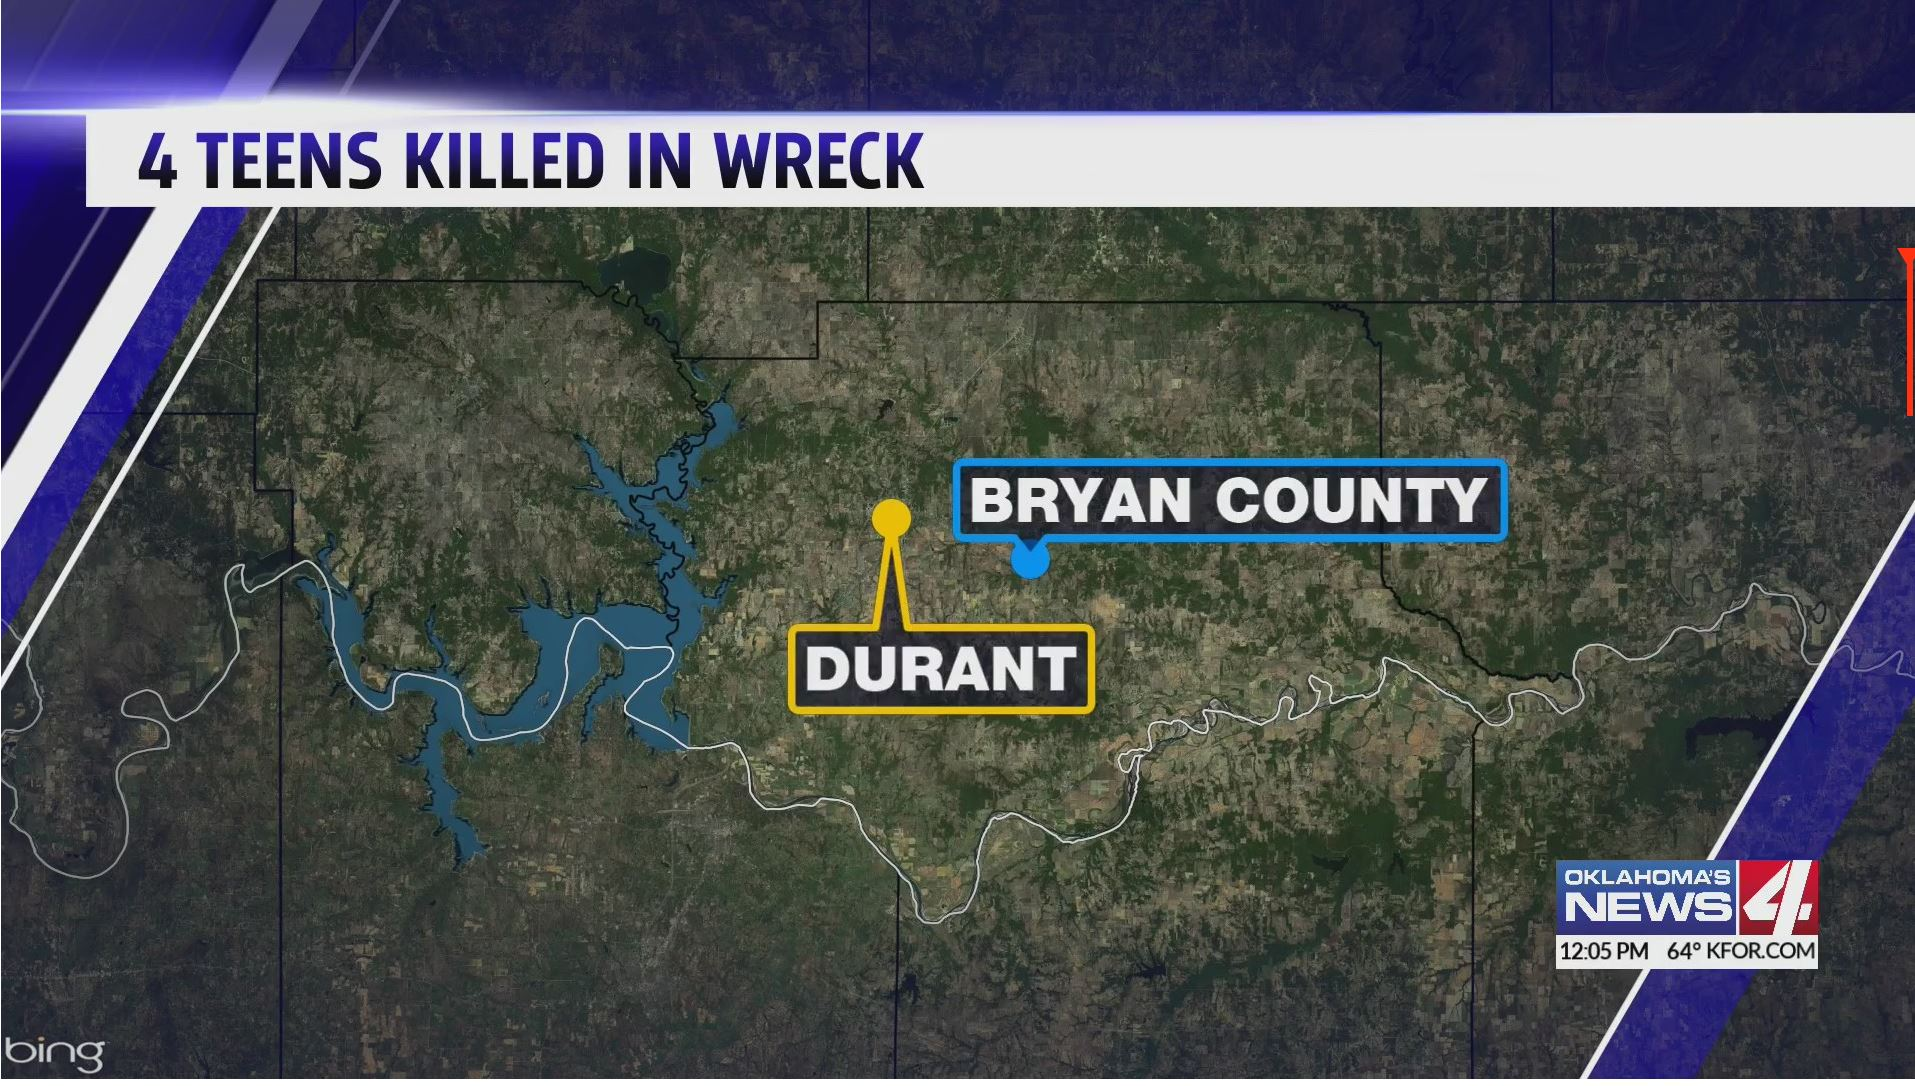 Four teens killed in wreck